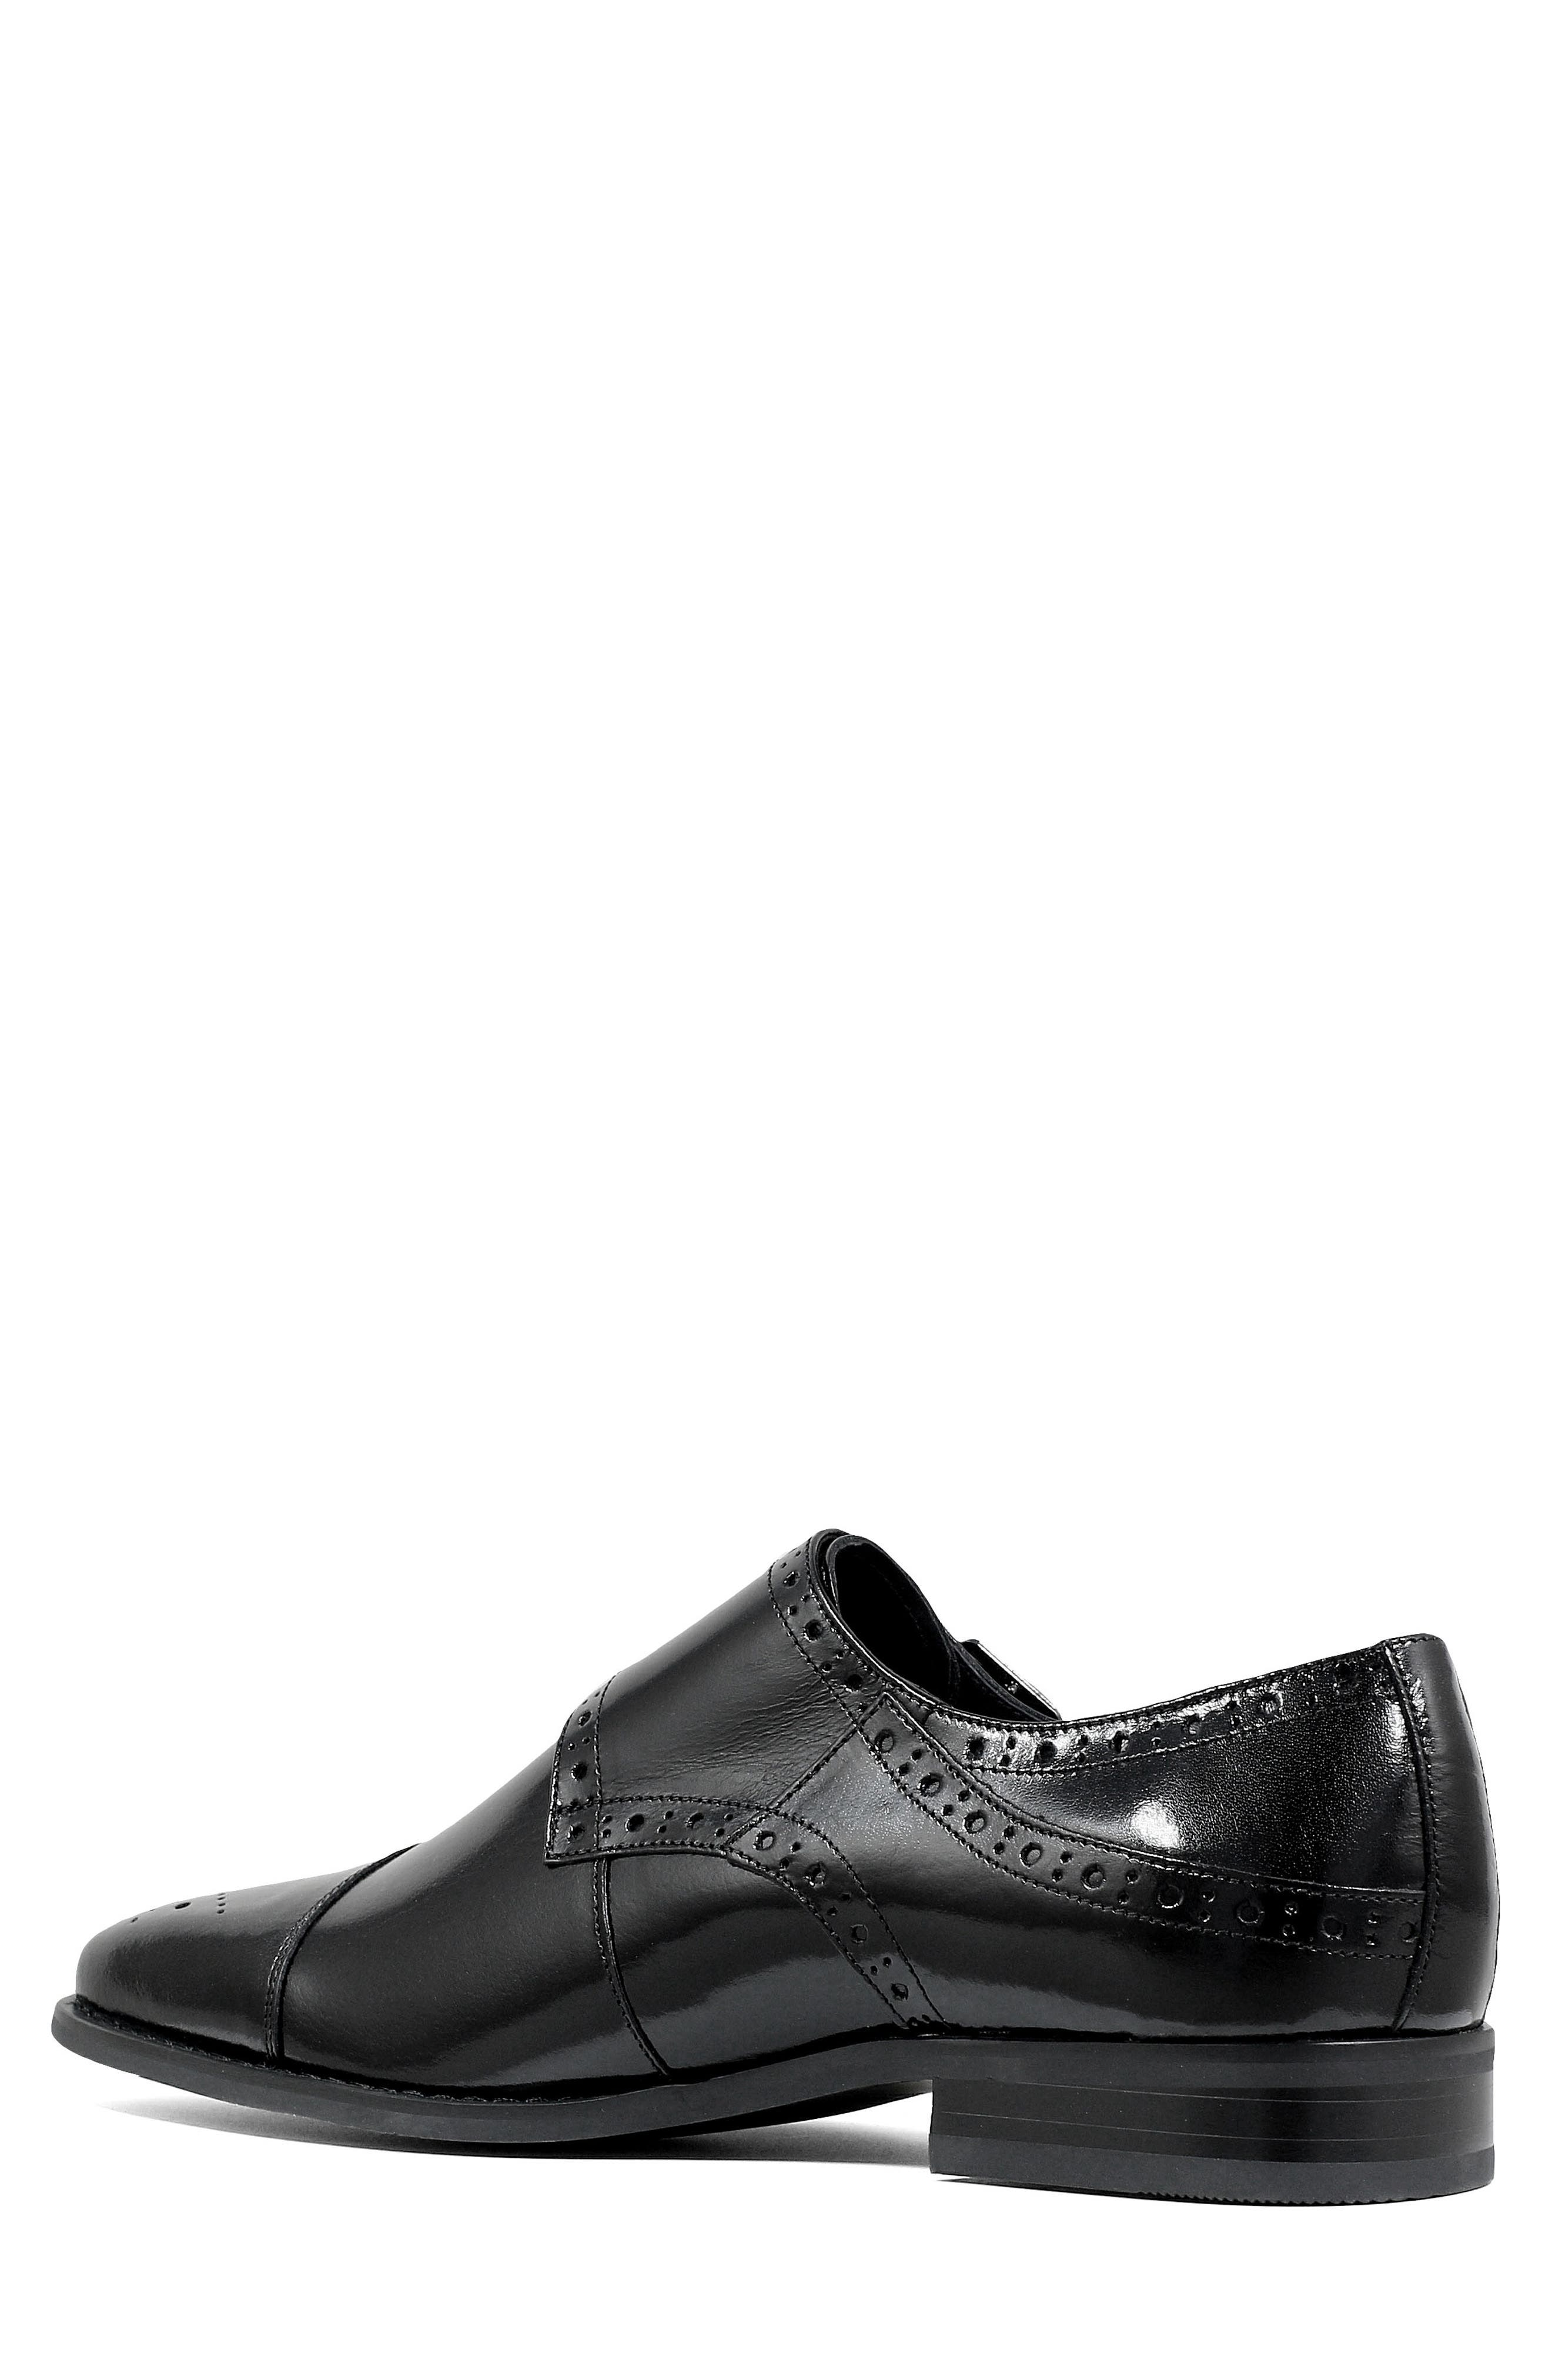 STACY ADAMS, Tayton Cap Toe Double Strap Monk Shoe, Alternate thumbnail 2, color, BLACK LEATHER